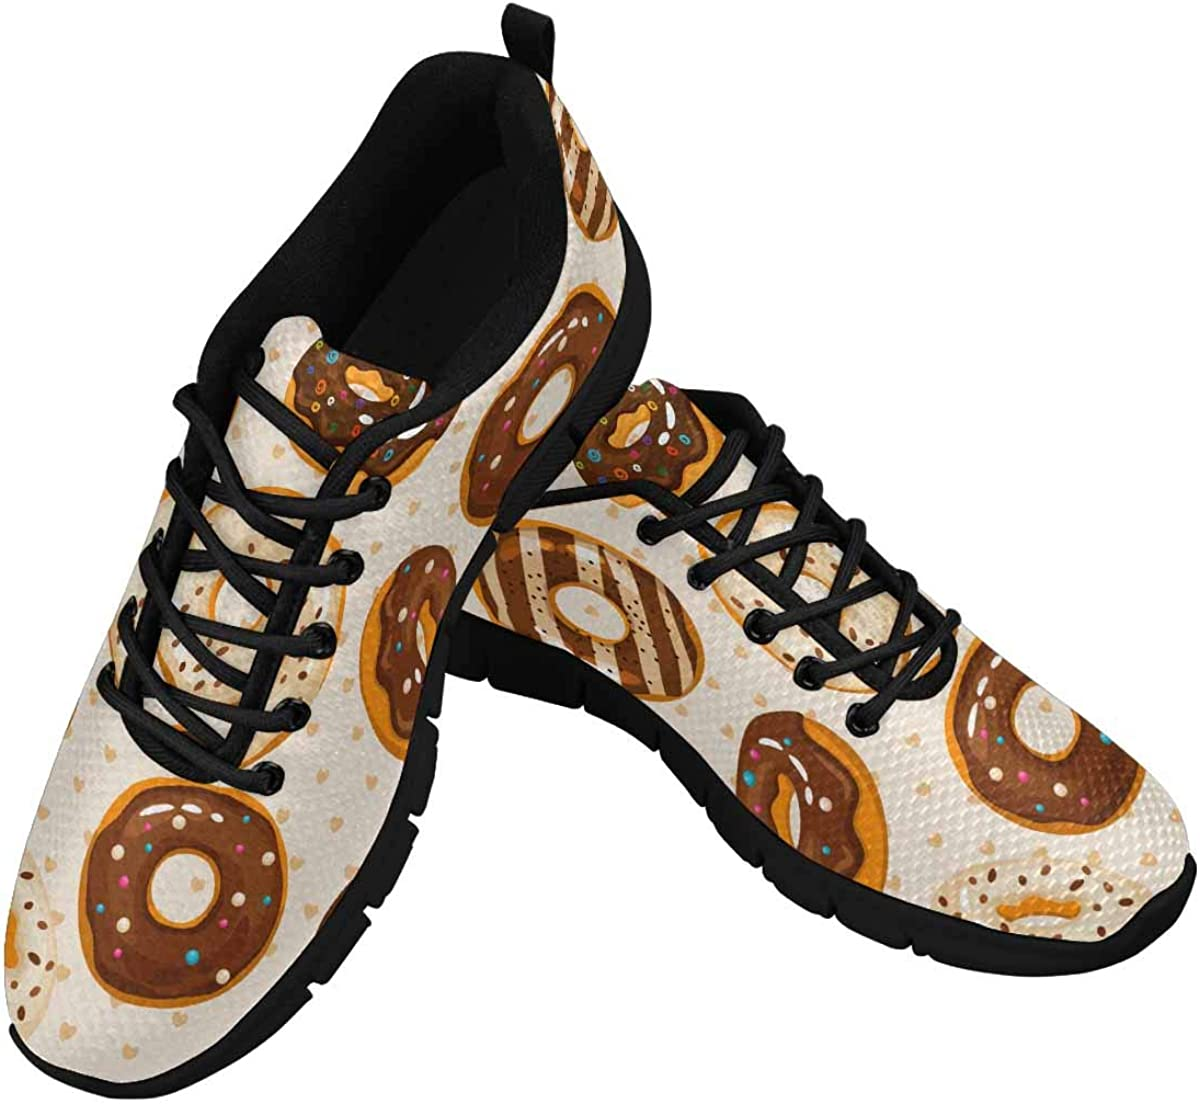 InterestPrint Glazed and Sugar Chocolate Donuts Women Walking Shoes Comfortable Lightweight Work Casual Travel Sneakers